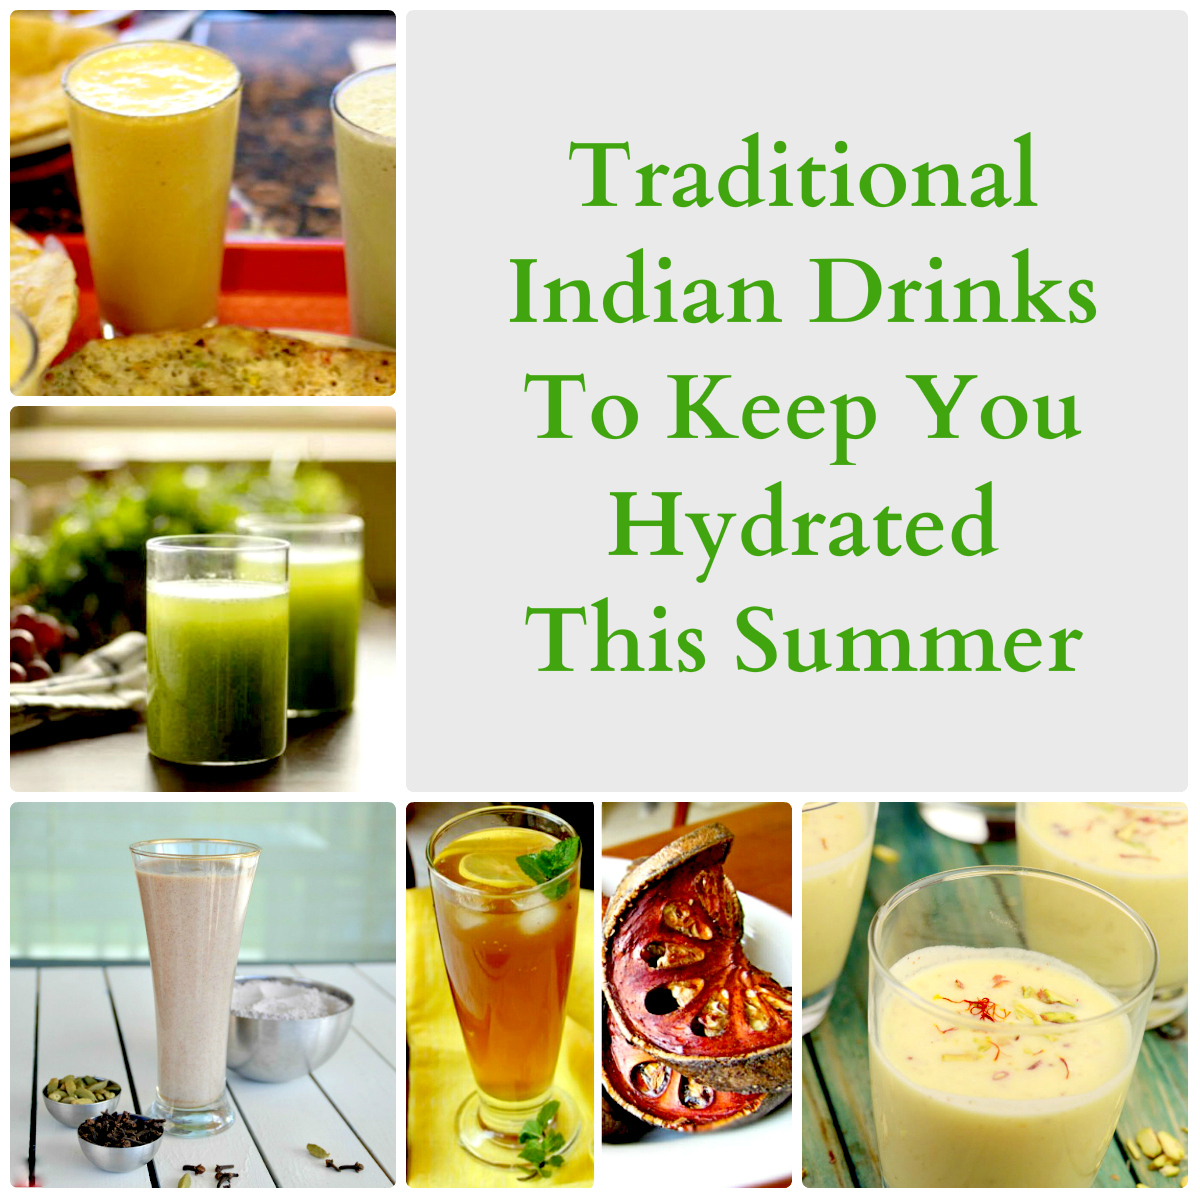 Traditional Indian Drinks To Keep You Hydrated This Summer